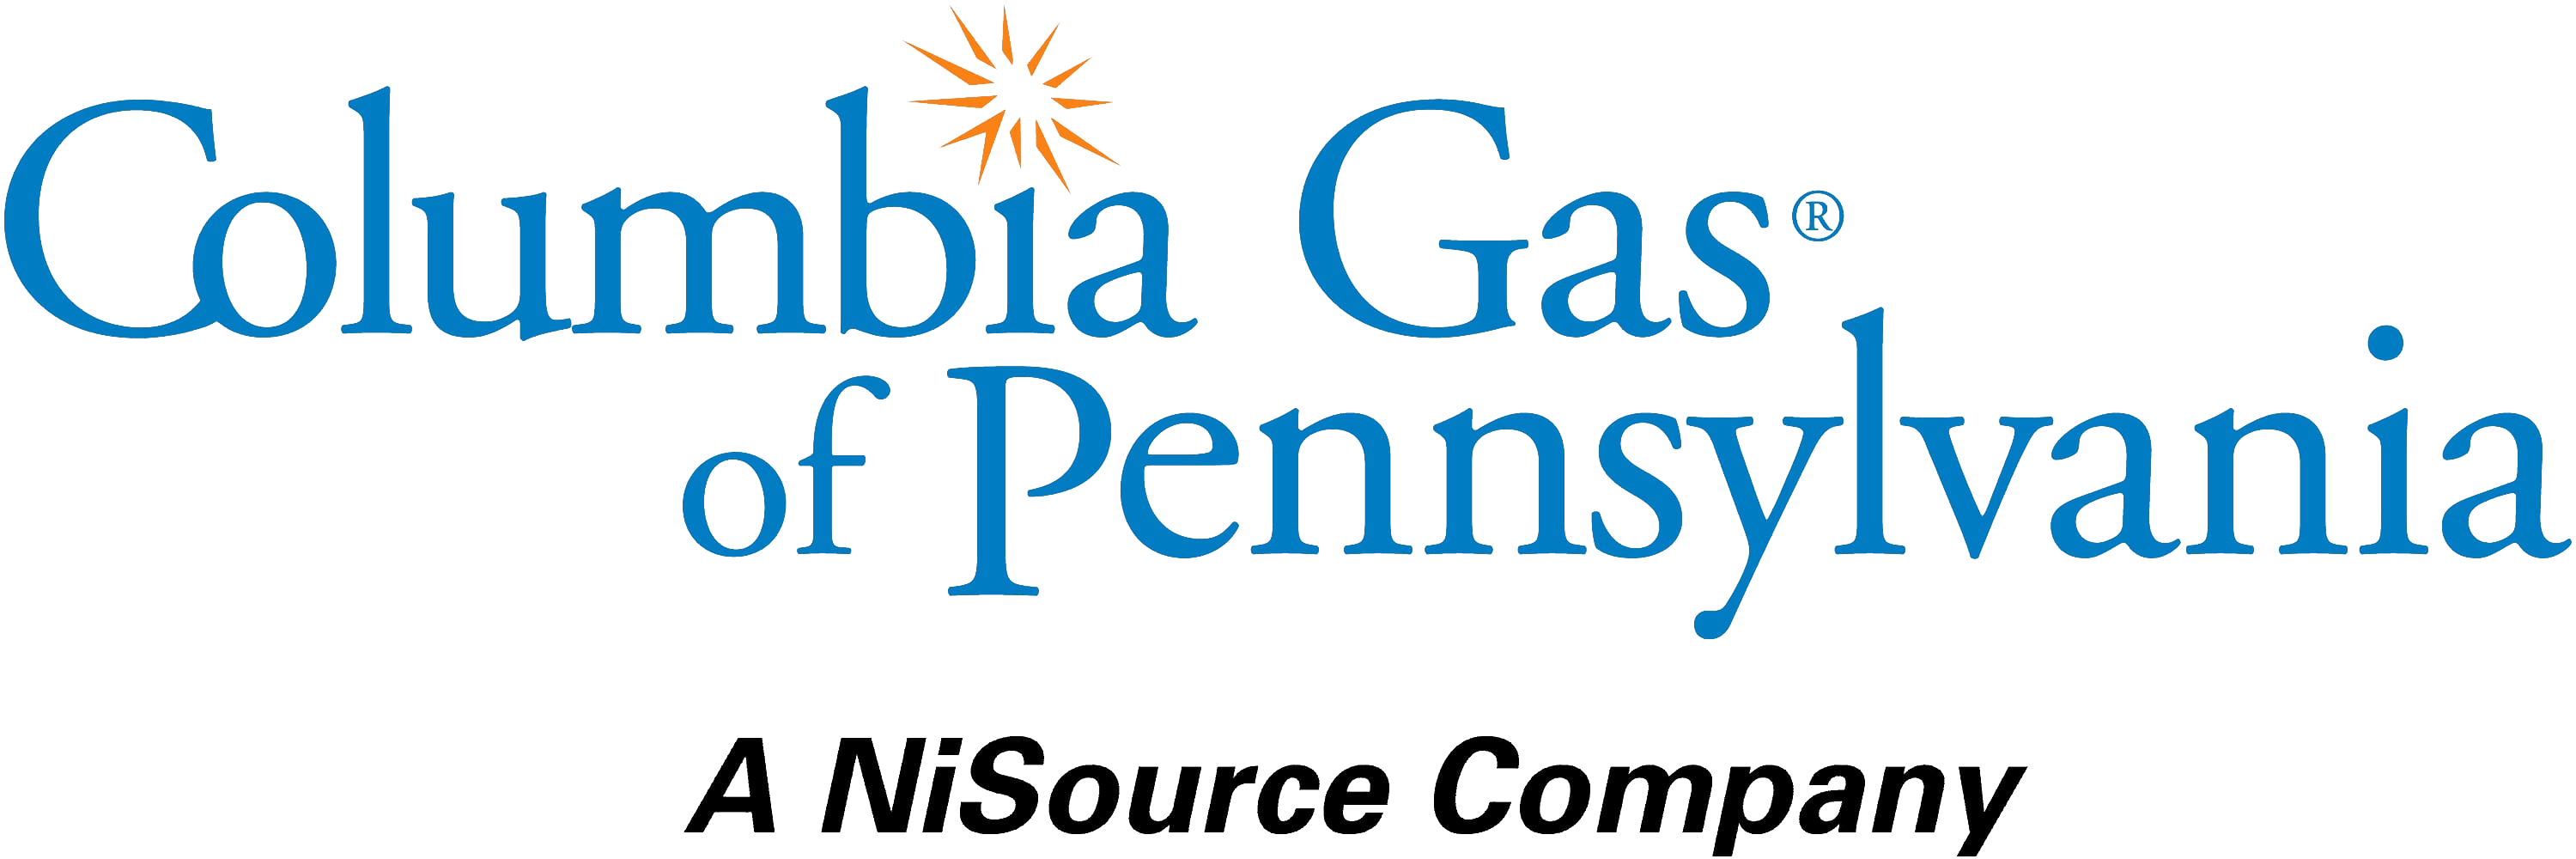 Columbia Gas of Pennsylvnania